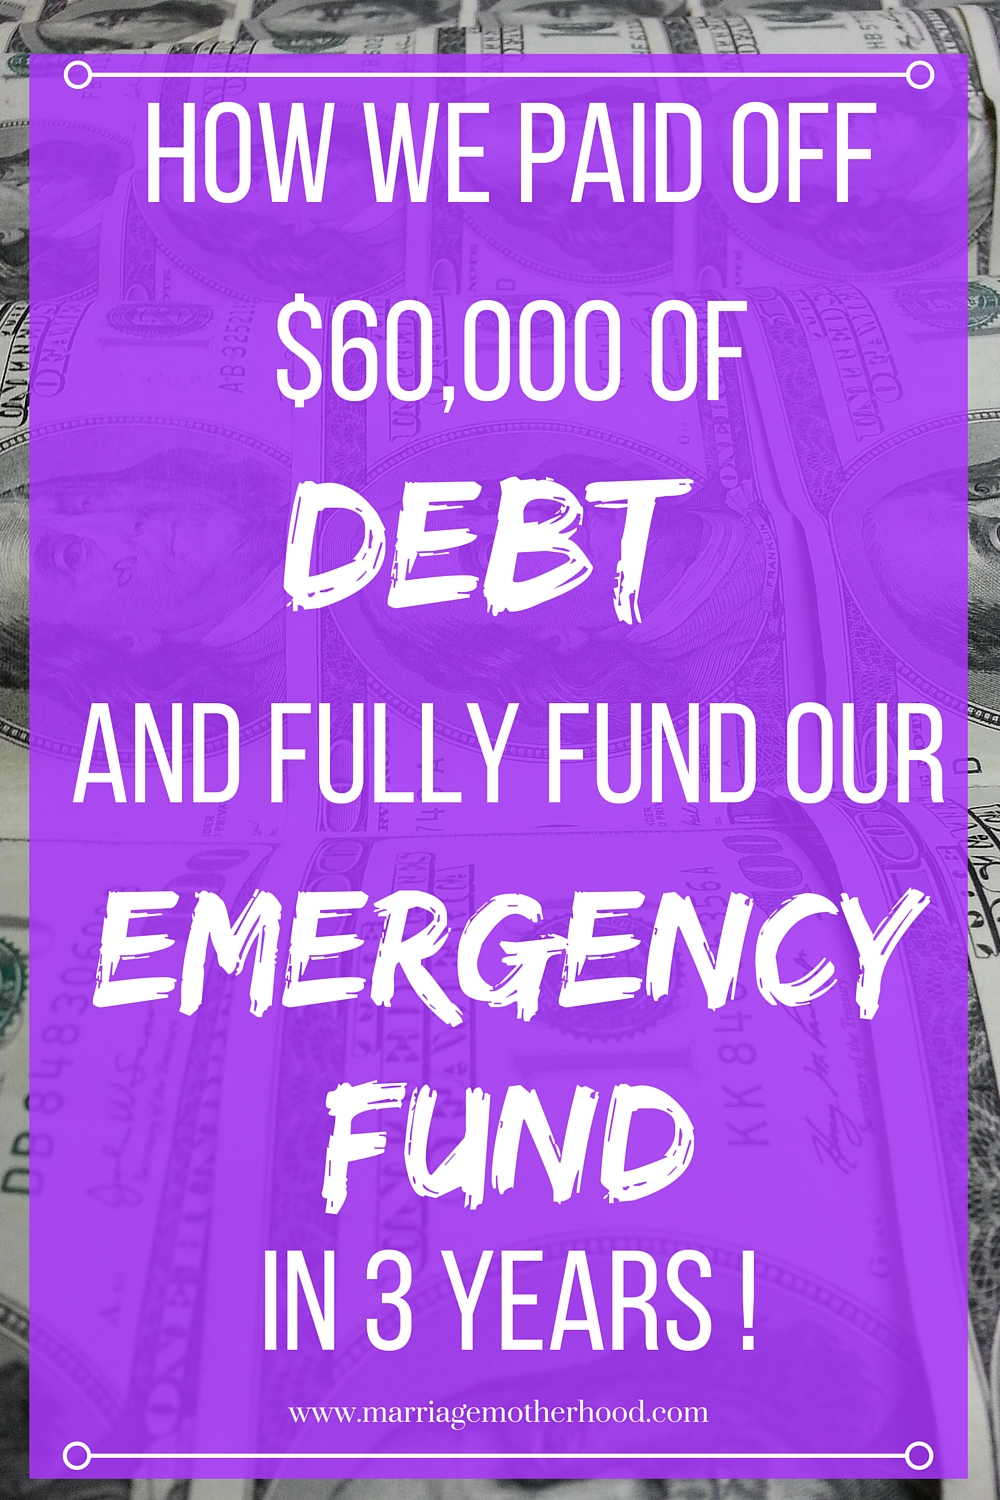 How we paid off $60,000 of and fully funded our emergency fund in 3 years!